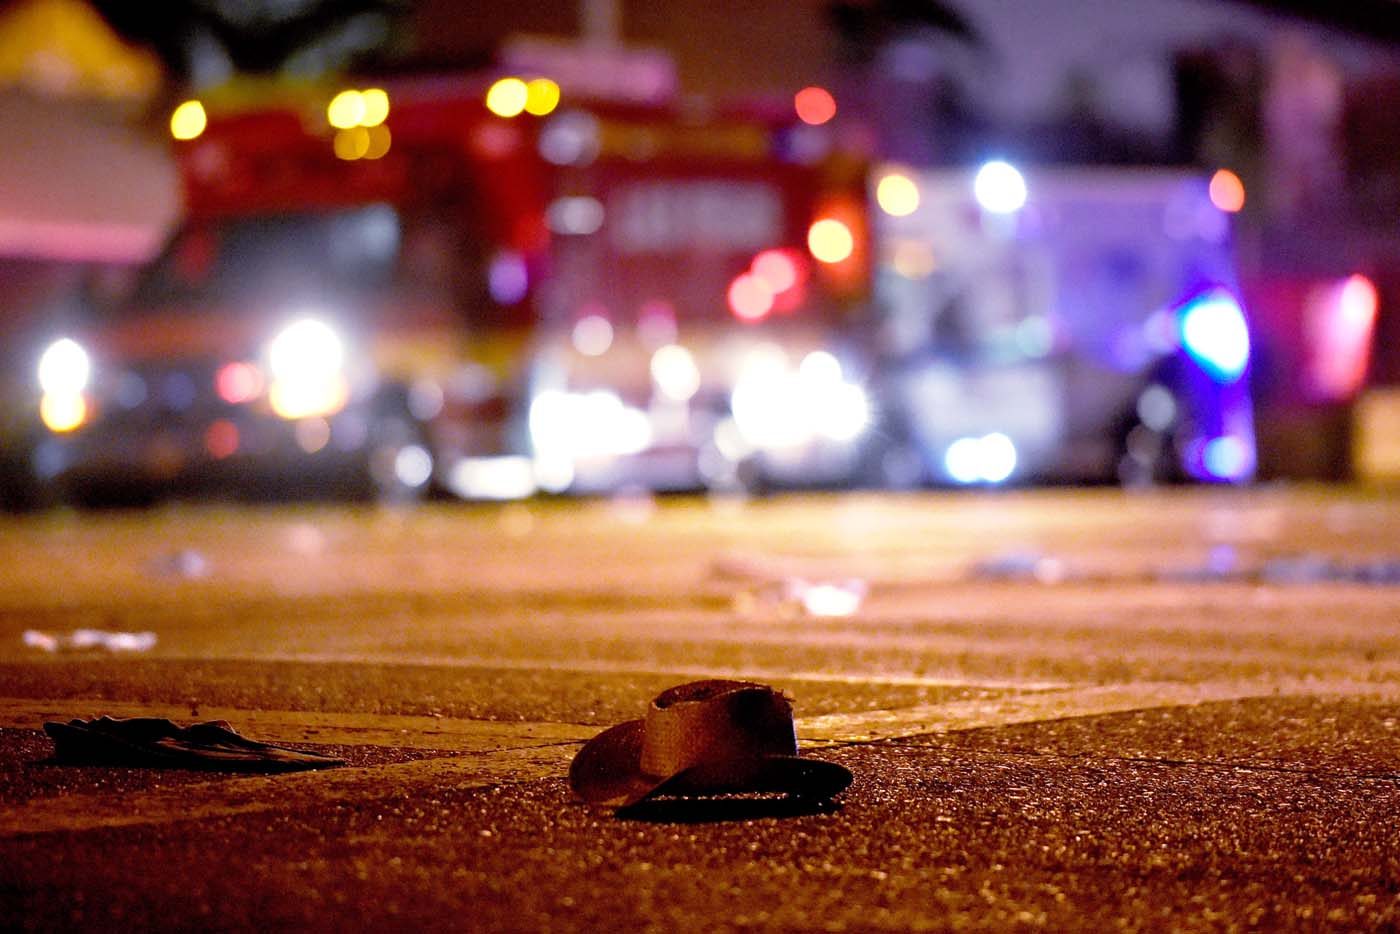 LAS VEGAS, NV - OCTOBER 02: A cowboy hat lays in the street after shots were fired near a country music festival on October 1, 2017 in Las Vegas, Nevada. A gunman has opened fire on a music festival in Las Vegas, leaving at least 20 people dead and more than 100 injured. Police have confirmed that one suspect has been shot. The investigation is ongoing. David Becker/Getty Images/AFP